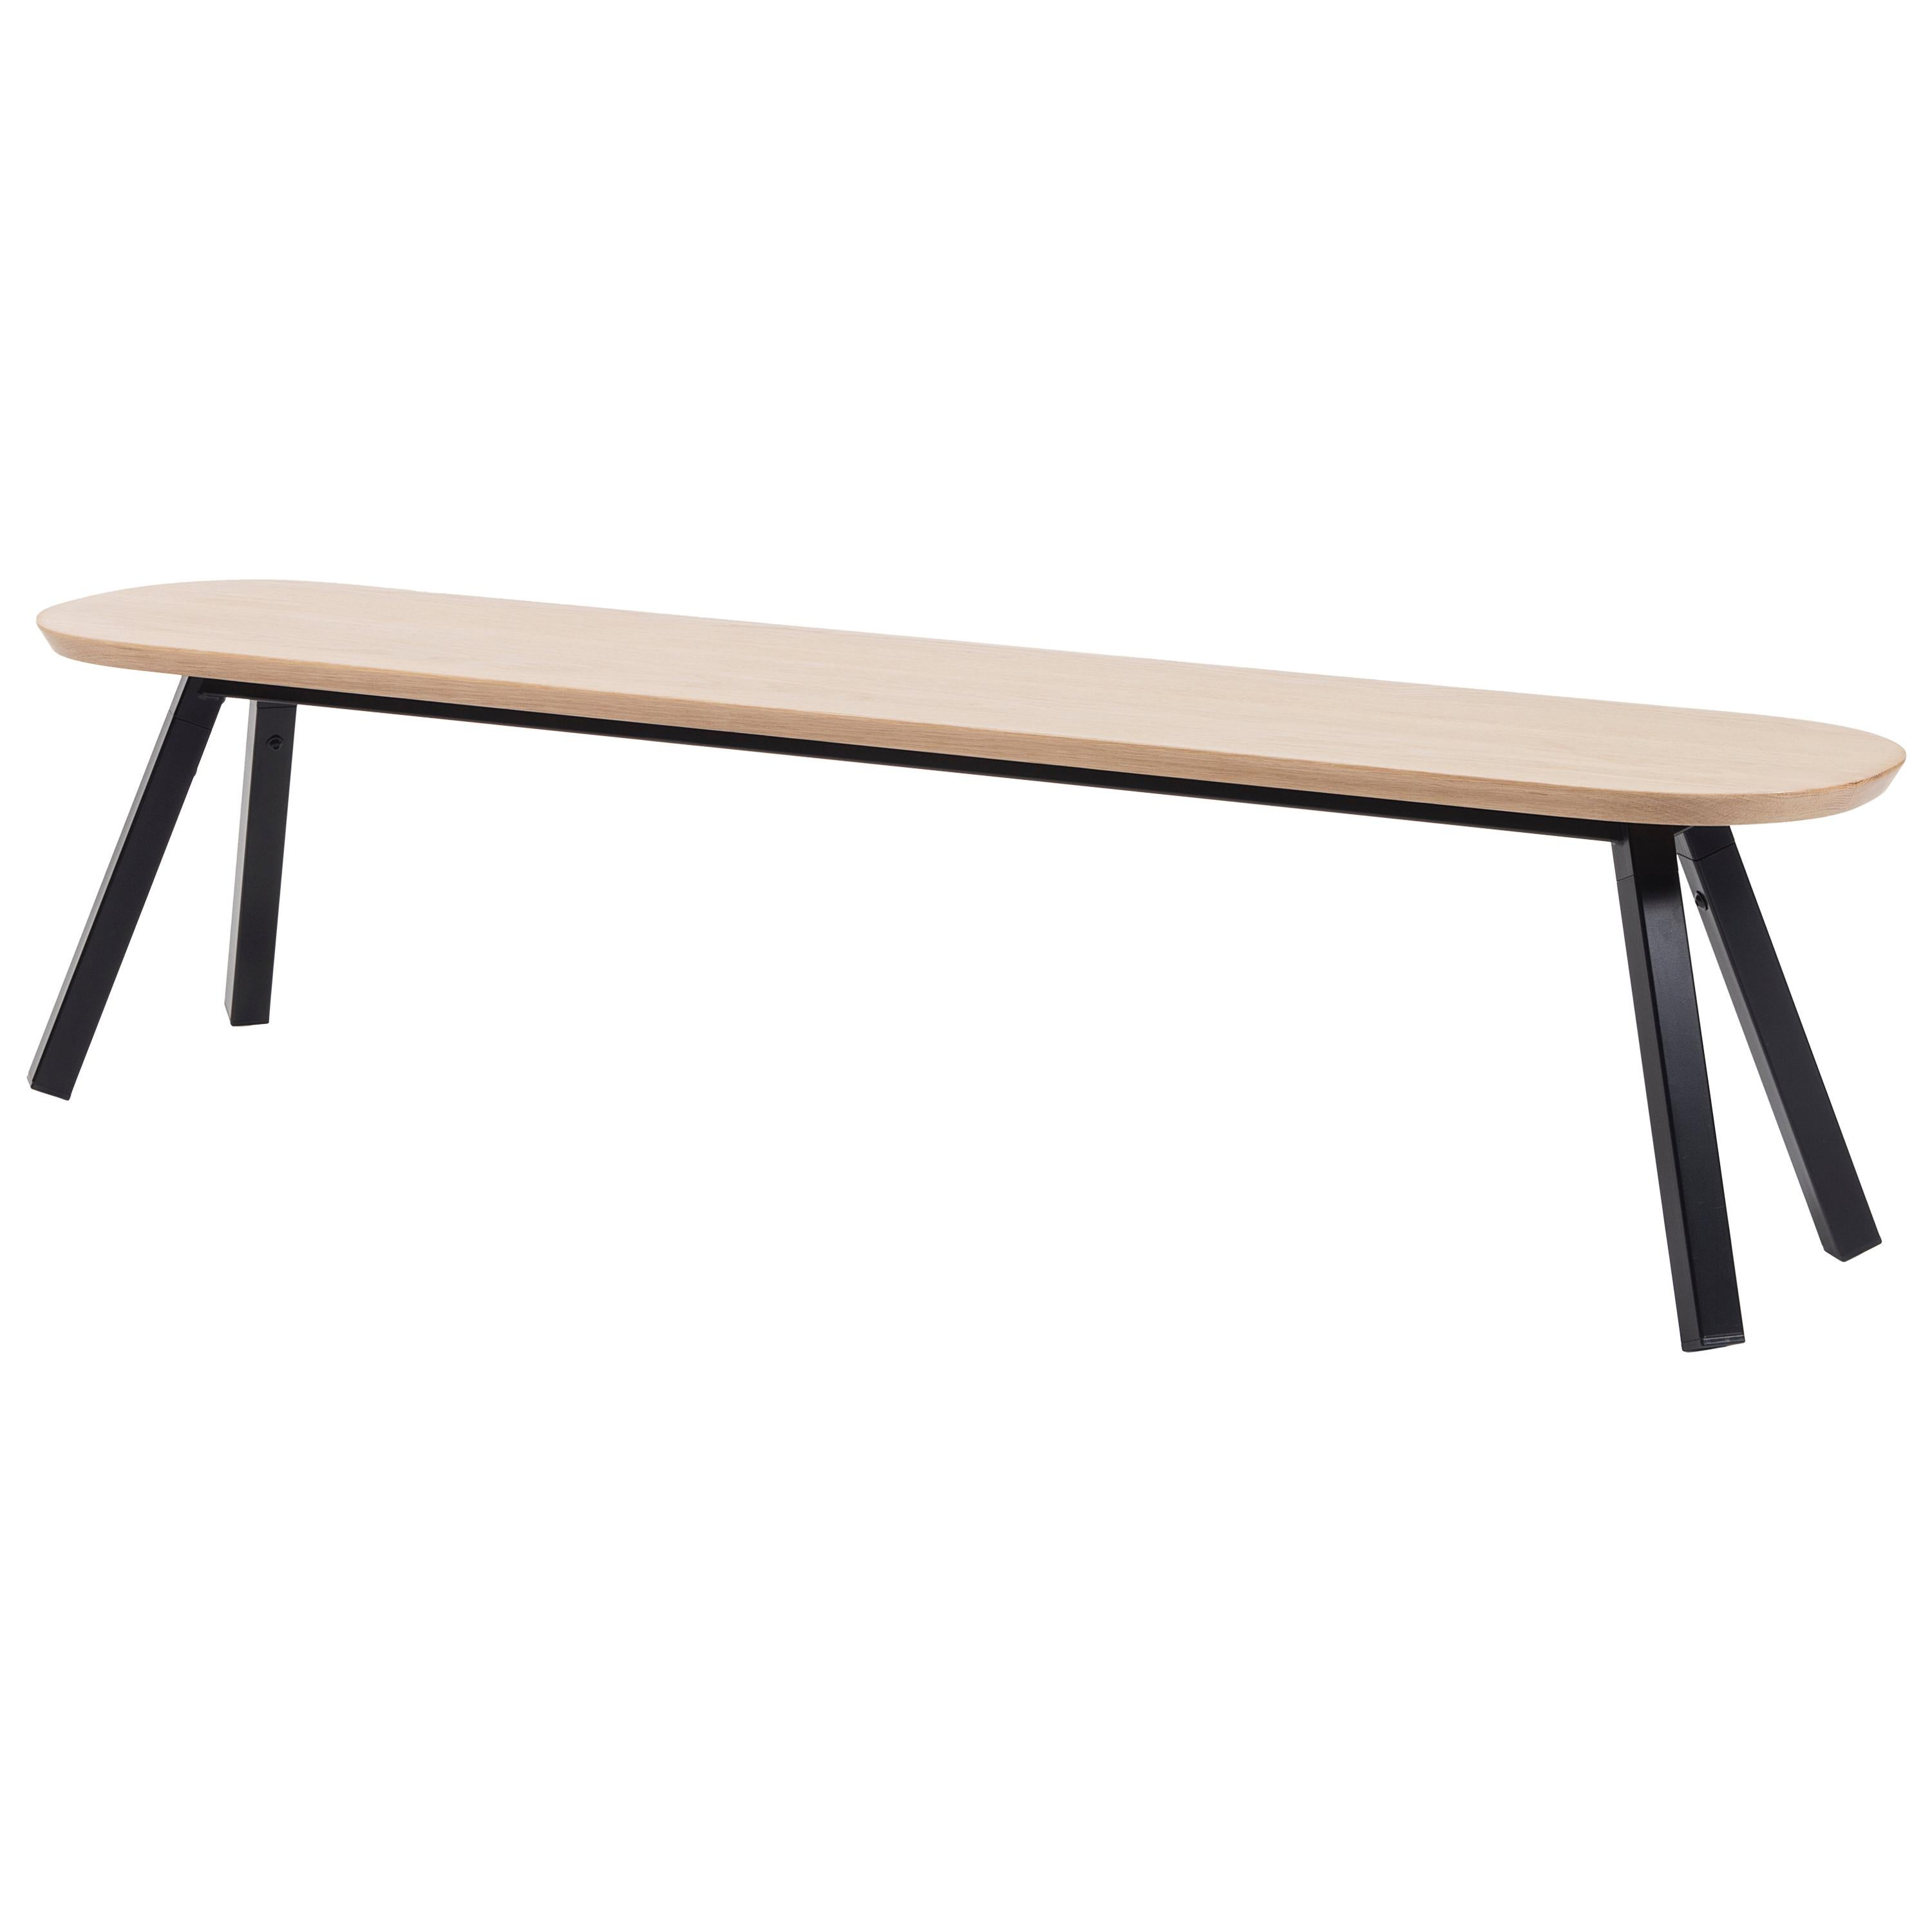 RS Barcelona You and Me 180 Bench in Oak with Black Legs by A.P.O.